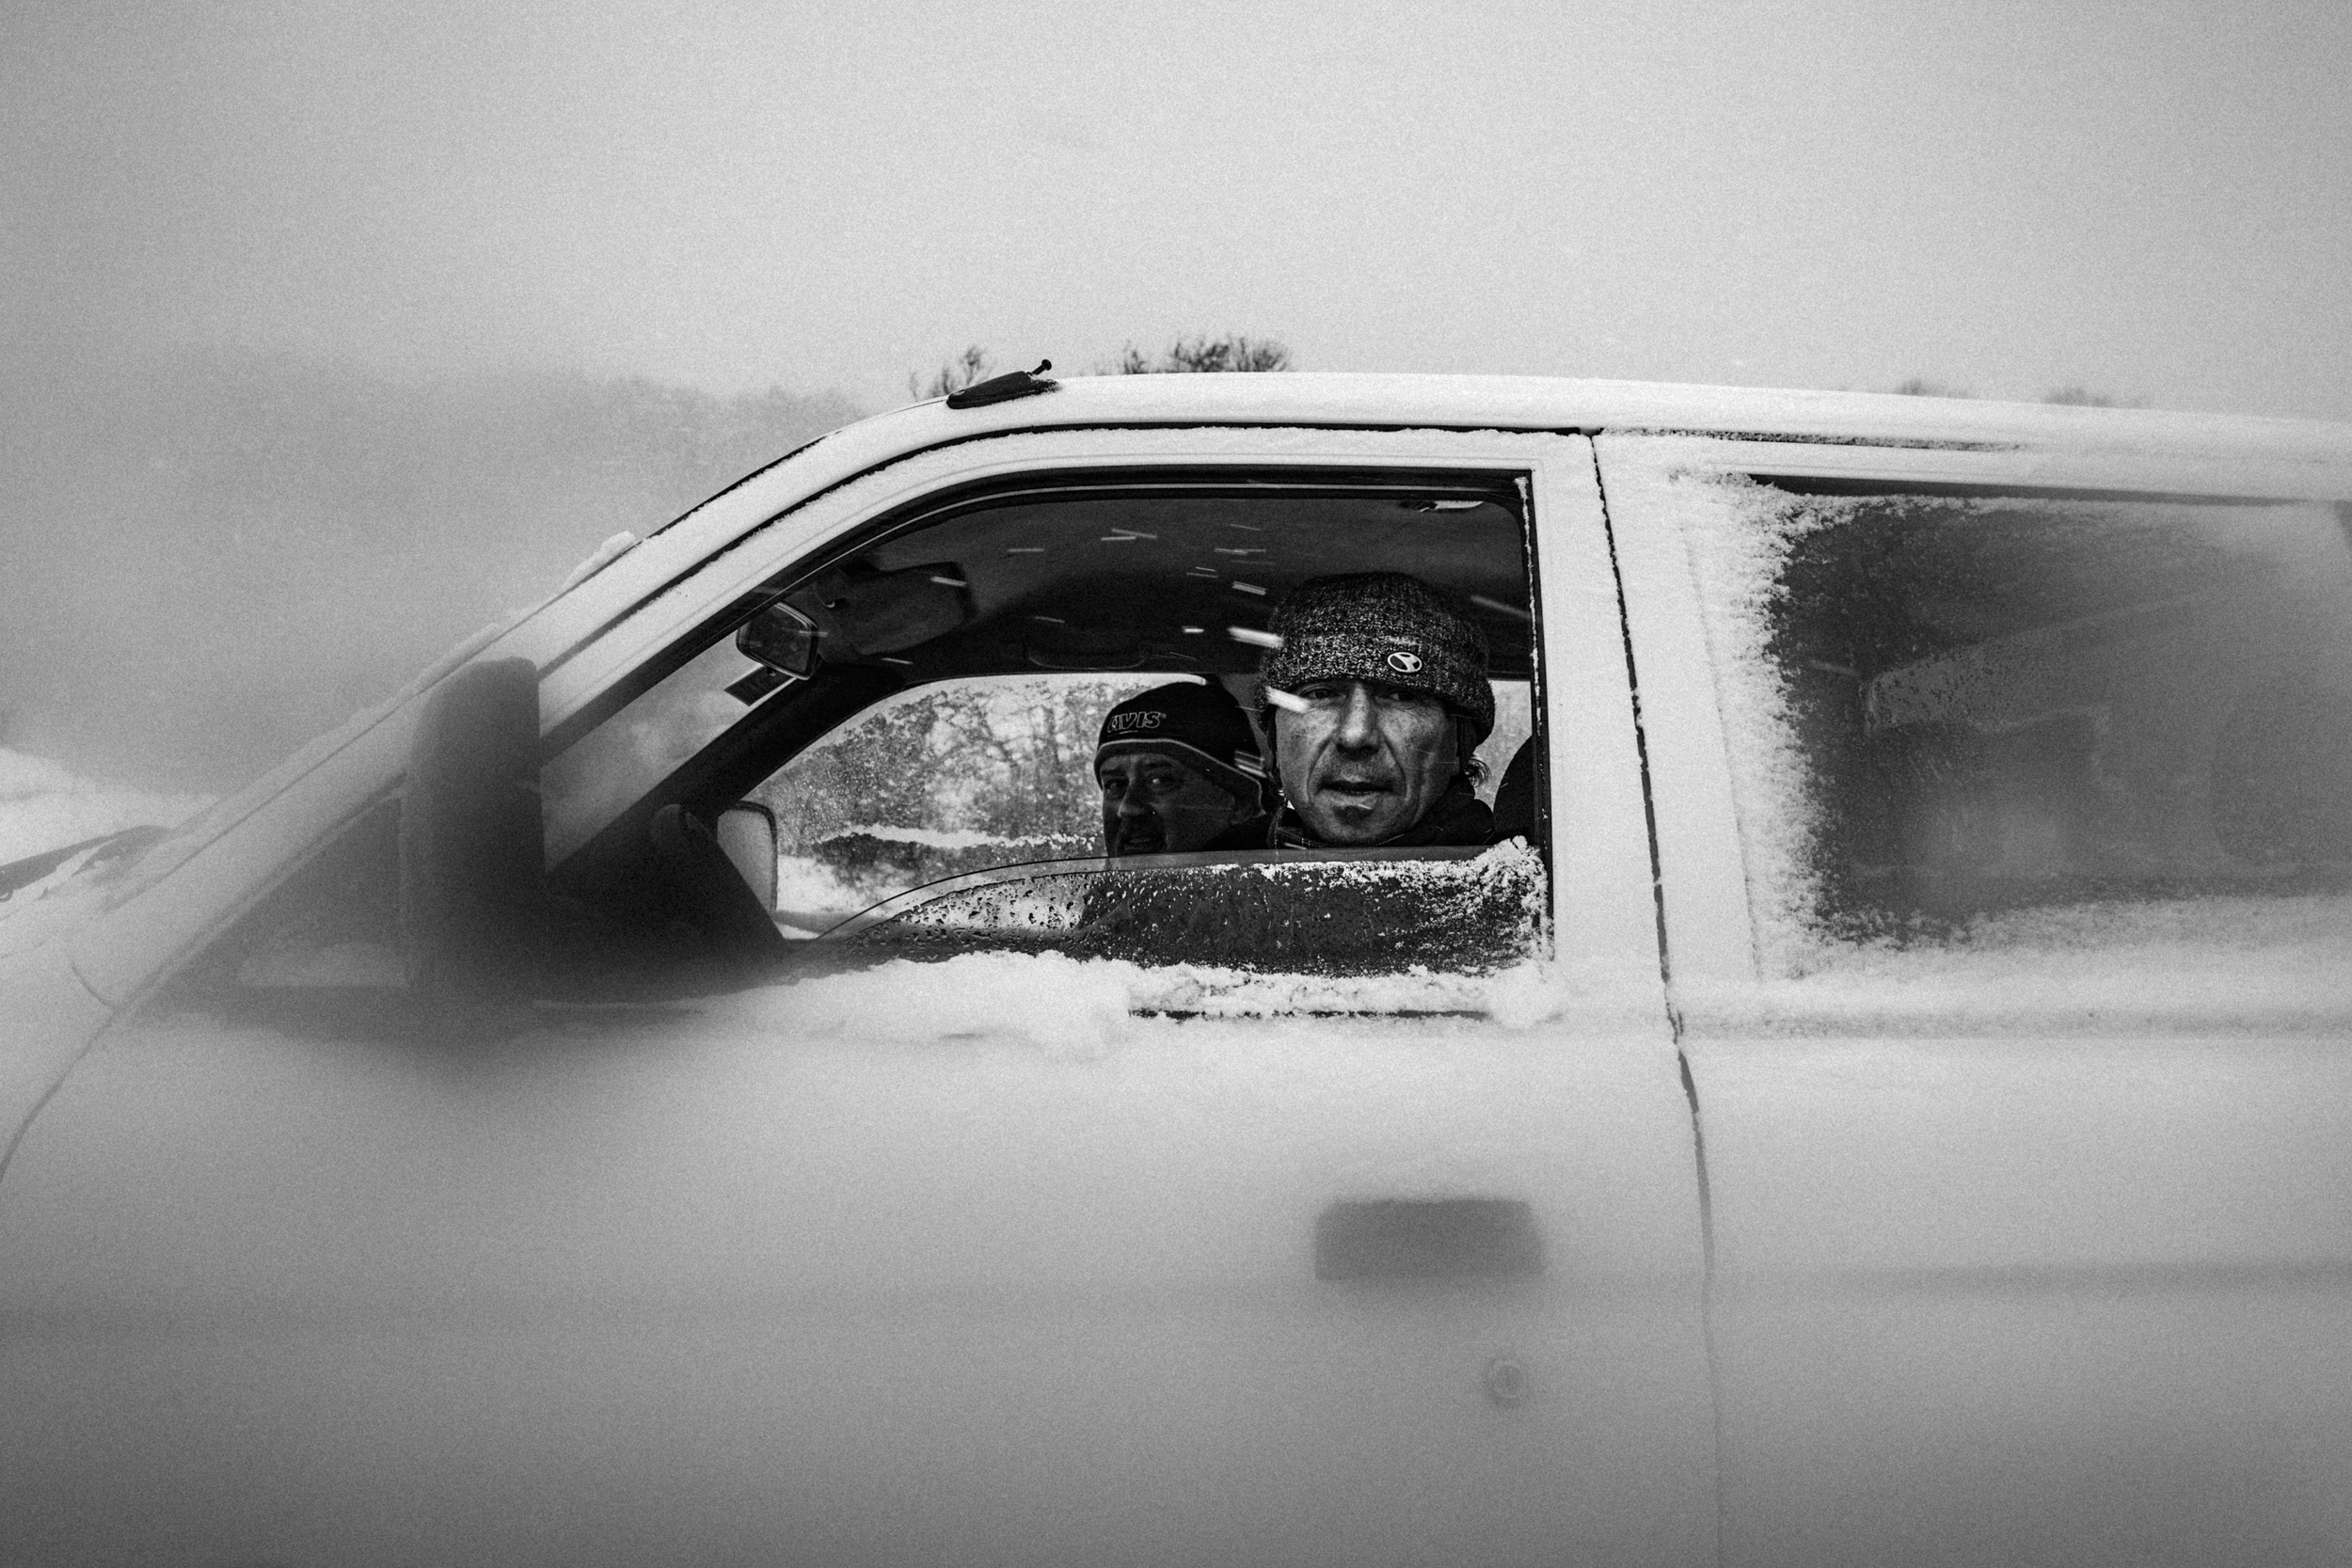 Capracotta (IS), Italy - January 2016. Venditti Giacomo and a friend in the middle of a storm, while returning to the village at the end of their daily activities related to livestock farming.